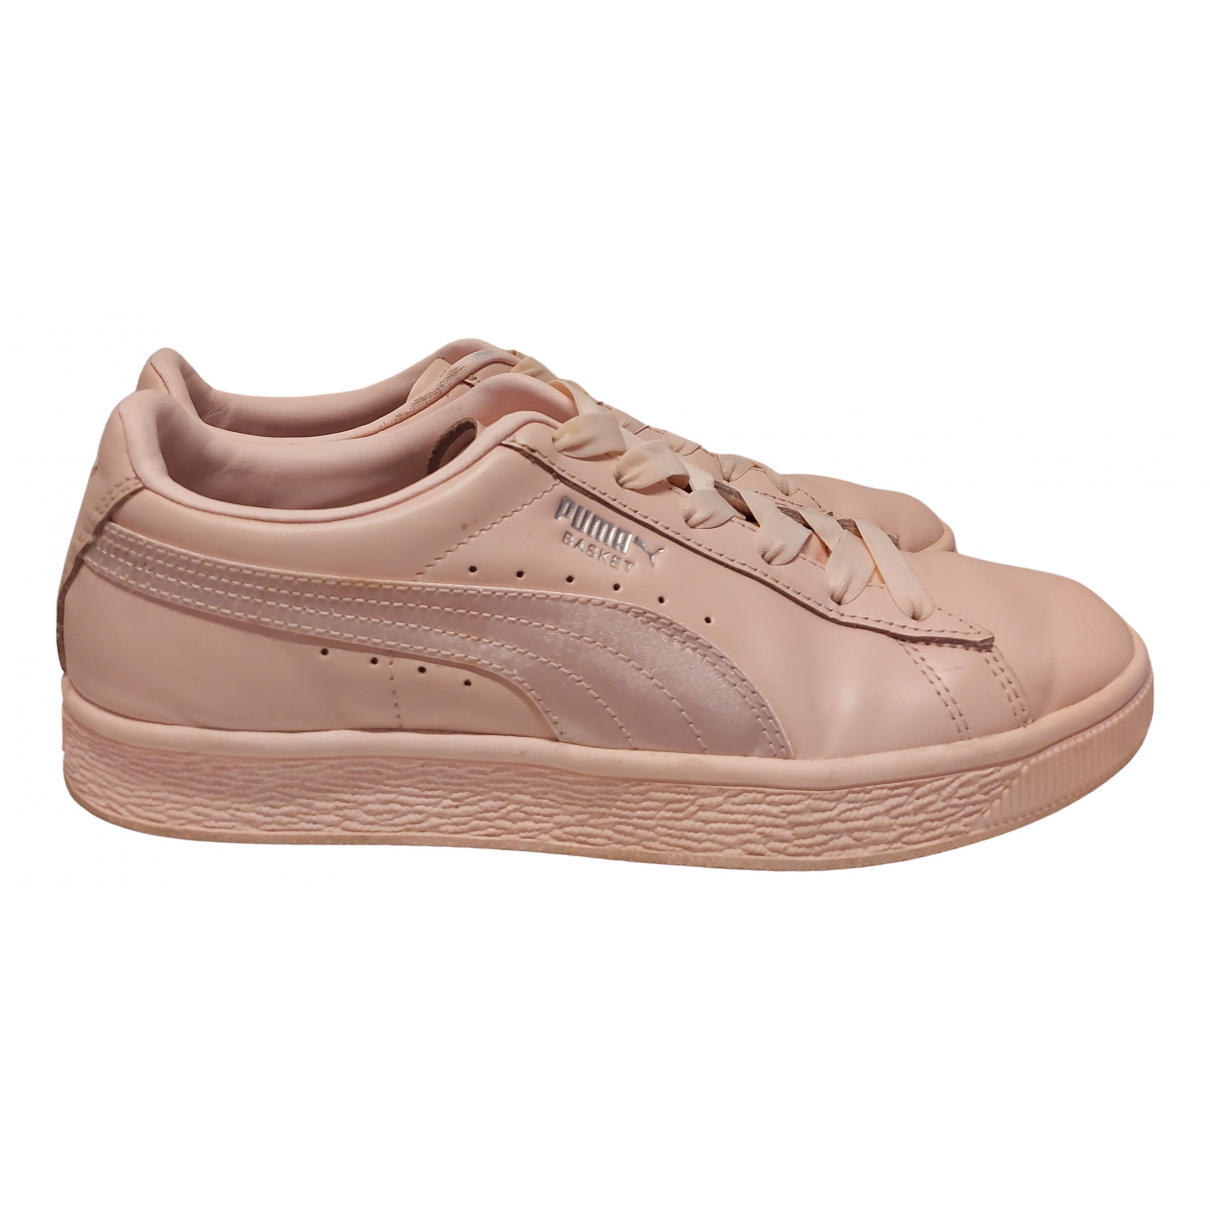 Puma N Pink Leather Trainers for Women 38 EU